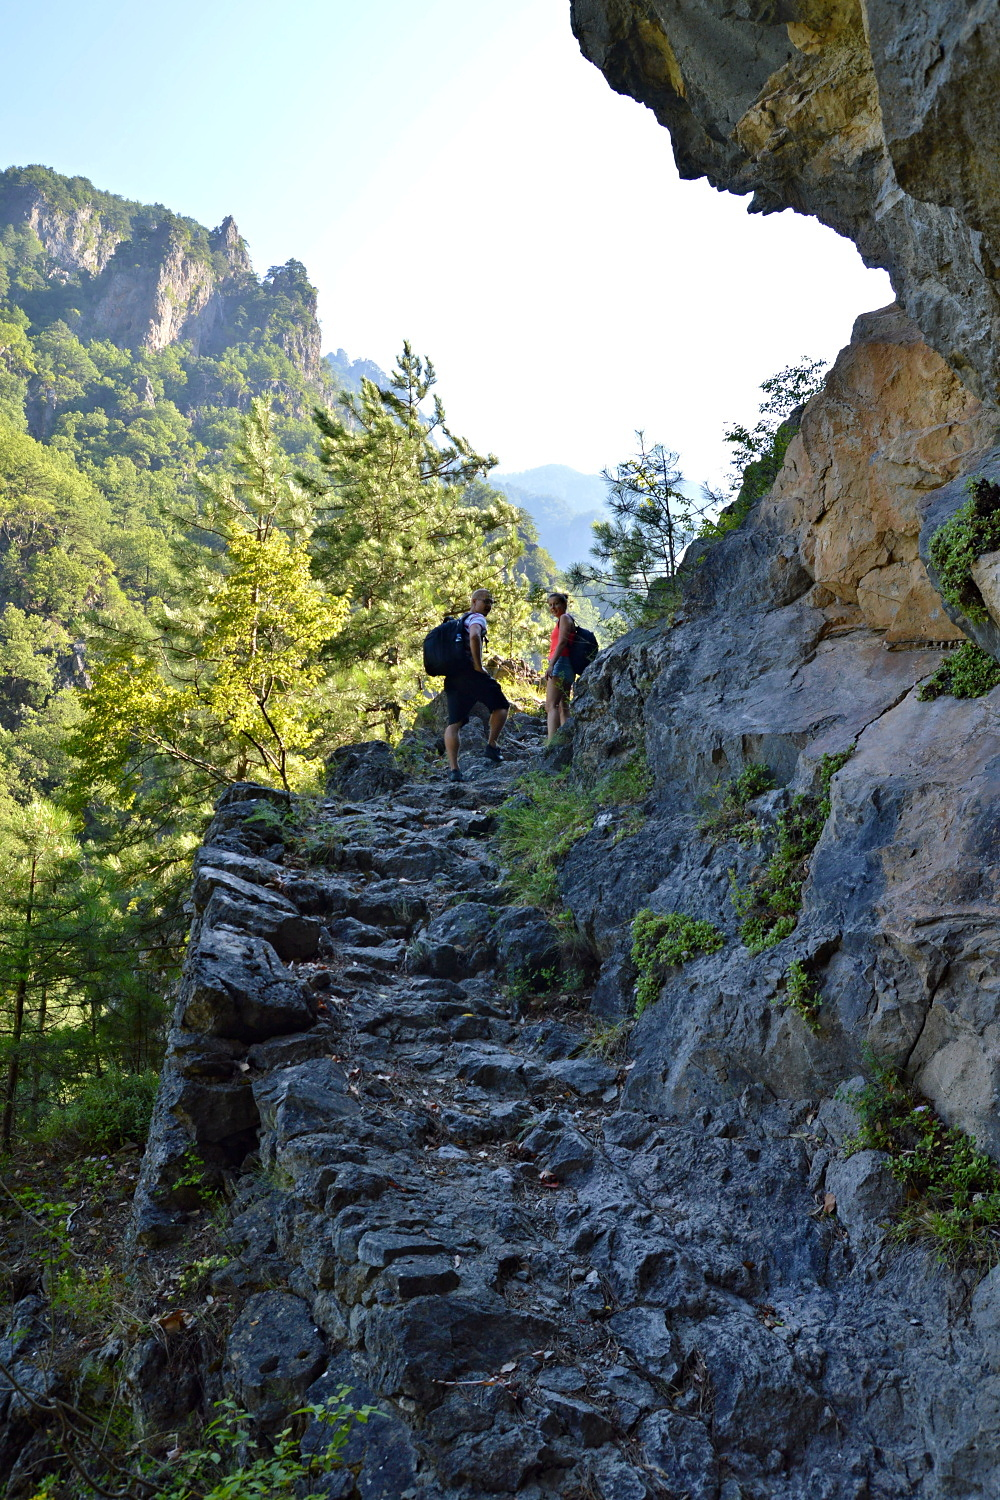 Hiking in the Aoos Gorge, Greece